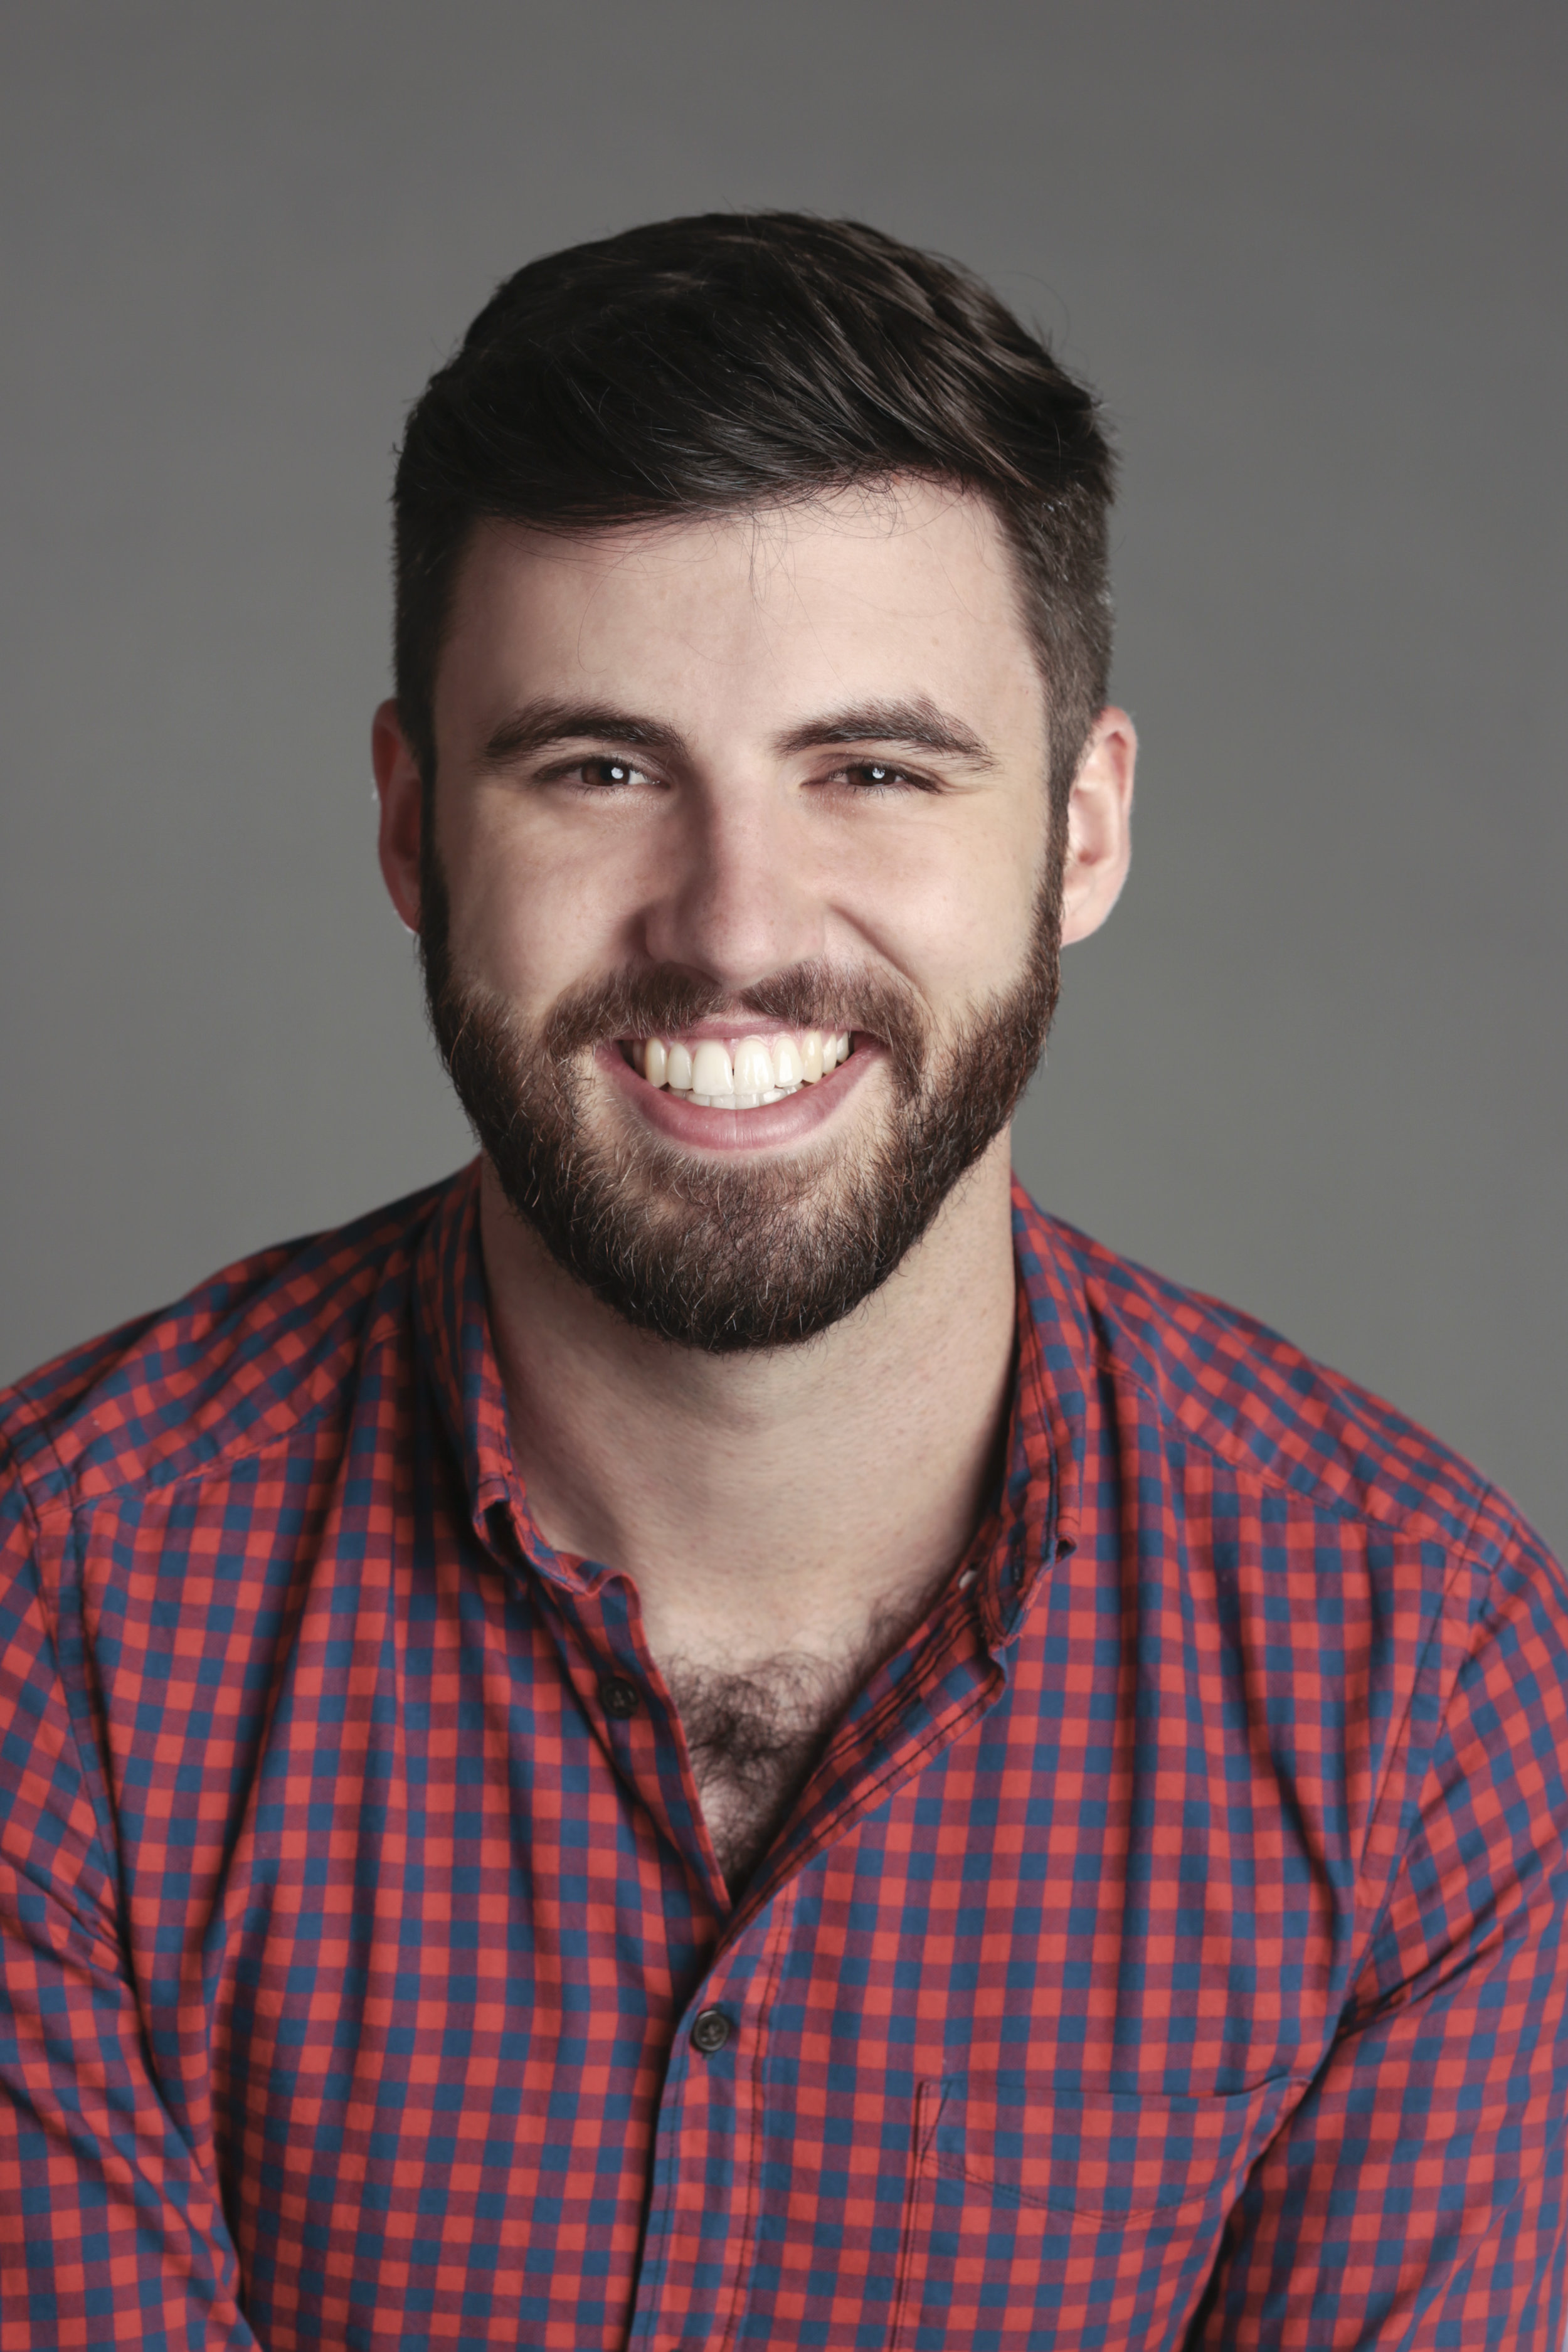 Set and Costume Design - Nathan is a designer and theatre maker who graduated from Monash University with a Bachelor of Performing Arts in 2014 and is a 2017 graduate from the Victorian College of the Arts (VCA) with a Masters of Design for Performance.His work explores new processes, forms and styles in theatre and performance. Nathan is interested in adapting and redefining canonical texts, reinterpreting them from heterogenic storytelling modes and opening them up to contemporary readings.Nathan's work includes set and costume design for Flora the Red Menace (VCA Music Theatre 2019); Q at La Mama Theatre; All That Is Right (Monash Academy of Performing Arts), including lighting design; Sneakyville (Before Shot Productions and FortyFive Downstairs); things we should talk about (Union House Theatre); as part of the 2018 Midsumma Festival, Small Cruelties (FortyFive Downstairs) and AntigoneX (Theatre Works); Never (VCA Theatre 2017), presented as part of the 2017 Melbourne Fringe Festival; Caucasian Chalk Circle (VCA Theatre 2017); Elegies for Angles, Punks and Raging Queens in the 2017 Midsumma Festival (Underscore Productions); Ryan at La Mama Theatre; The Outsider at La Mama Theatre (Stork Theatre Company); Antigone (The Bloomshed); for Monash Shakespeare Company, Troylus and Cressida and Titus, which included lighting design; Softly Pouting While Walking Into Breezes (MUST), including the 2015 Midsumma Festival remount; The Government Inspector for Monash Uni Student Theatre (MUST); Knives in Hens (MUST).Nathan was set design secondment to Owen Phillips on Vivid White at the Melbourne Theatre Company through 2017 and design associate to Eugyeene Teh on Nightingale And The Rose with Little Ones Theatre at Theatre Works in 2018.